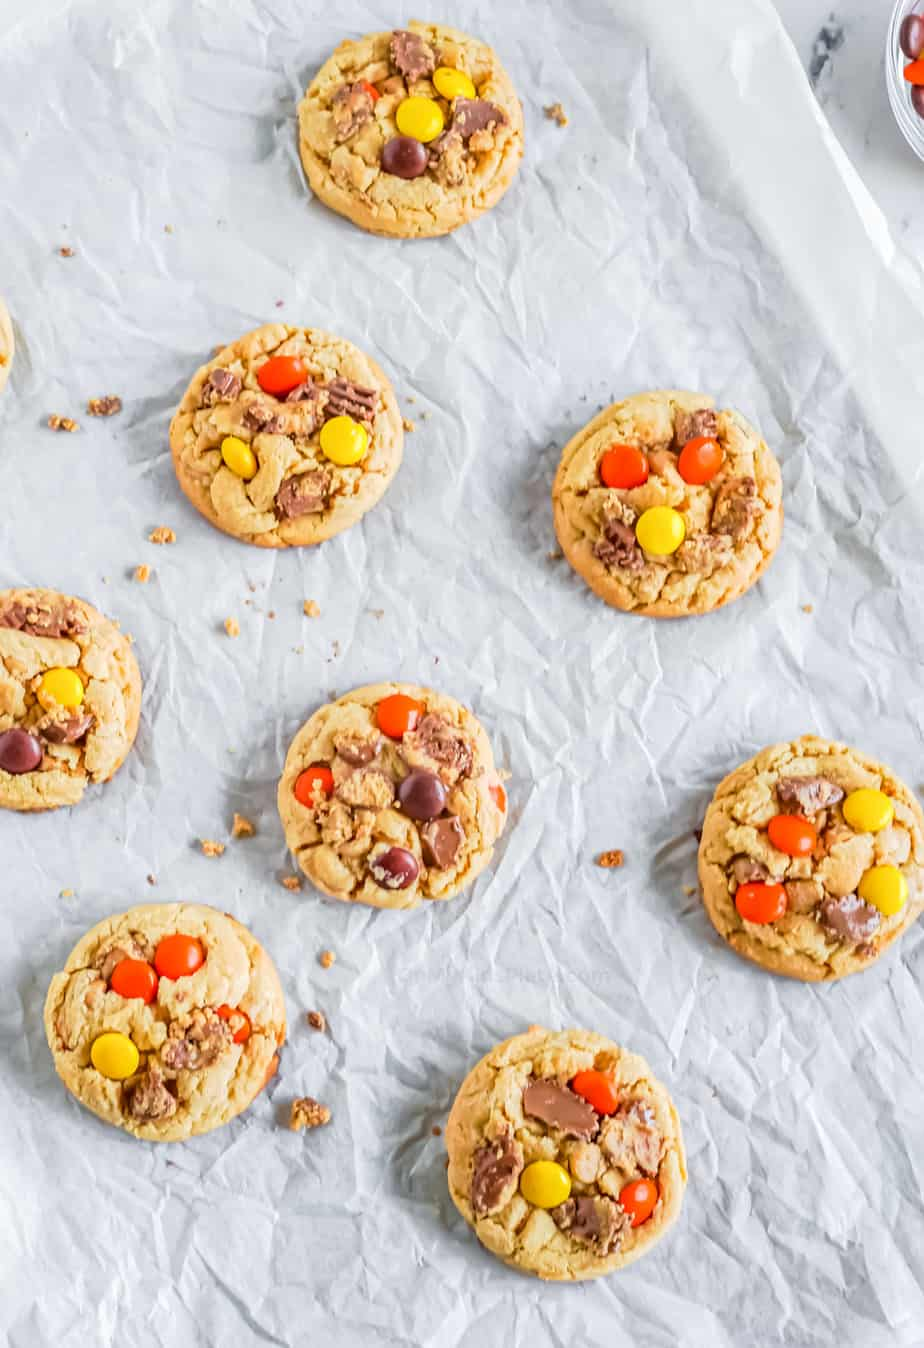 Cookies baked on the pan with peanut butter cups and Reese's pieces pressed into the top of the cookies.